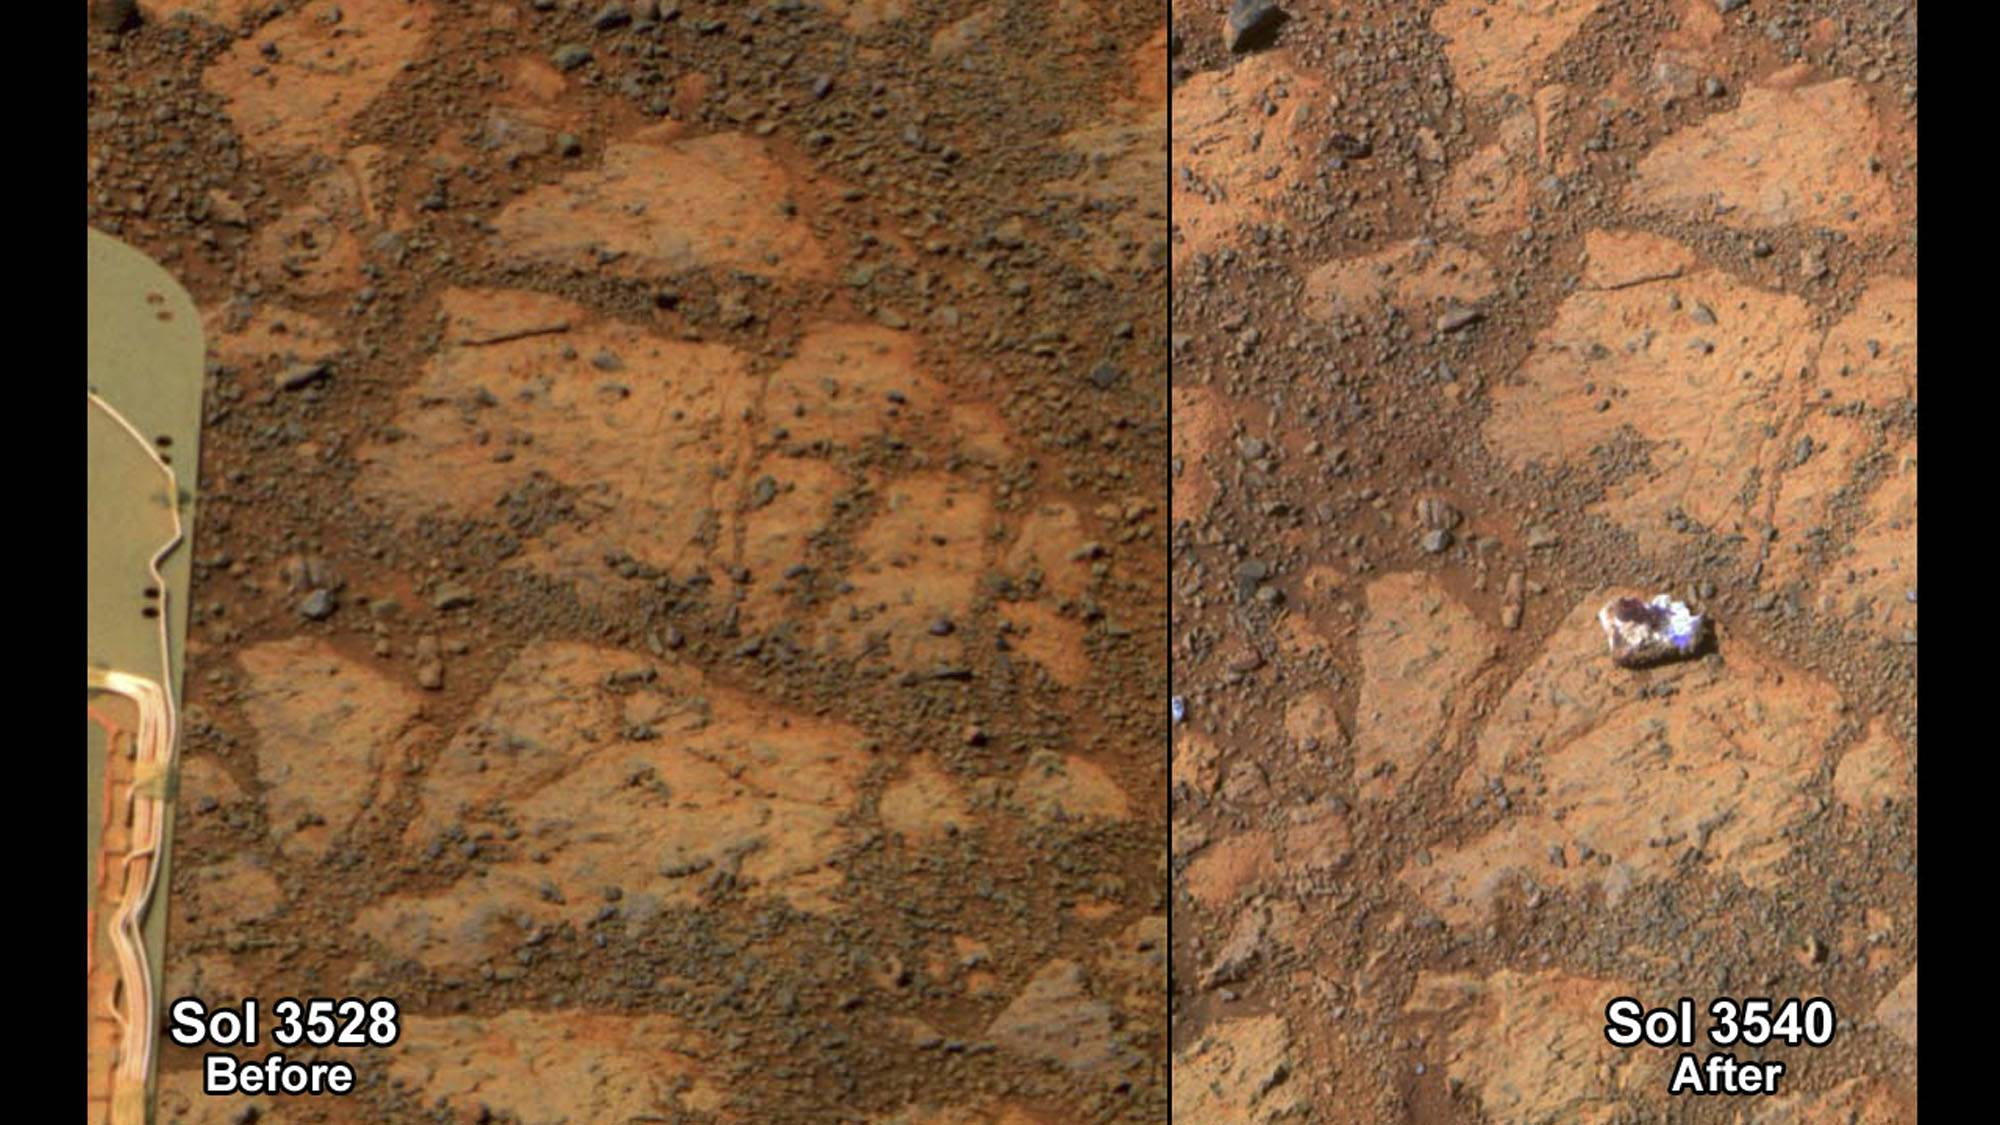 This composite image shows before and-after images taken by the Opportunity rover. At left is an image of a patch of ground taken on Dec. 26, 2013. At right is in image taken on Jan. 8, 2014 showing a rock shaped like a jelly doughnut that had not been there before.